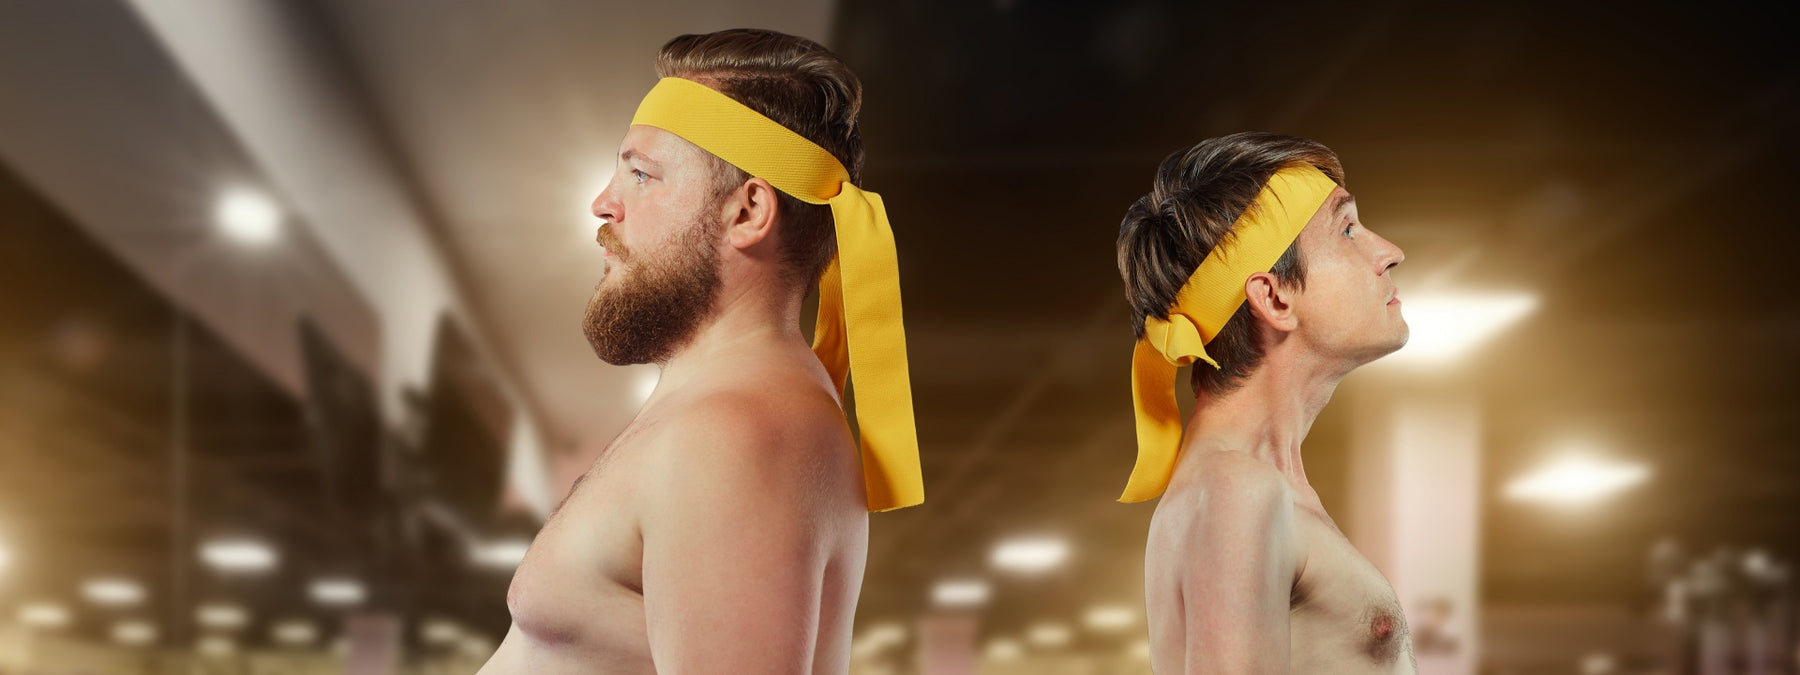 7 Weirdos You Will Encounter in the Men's Locker Room